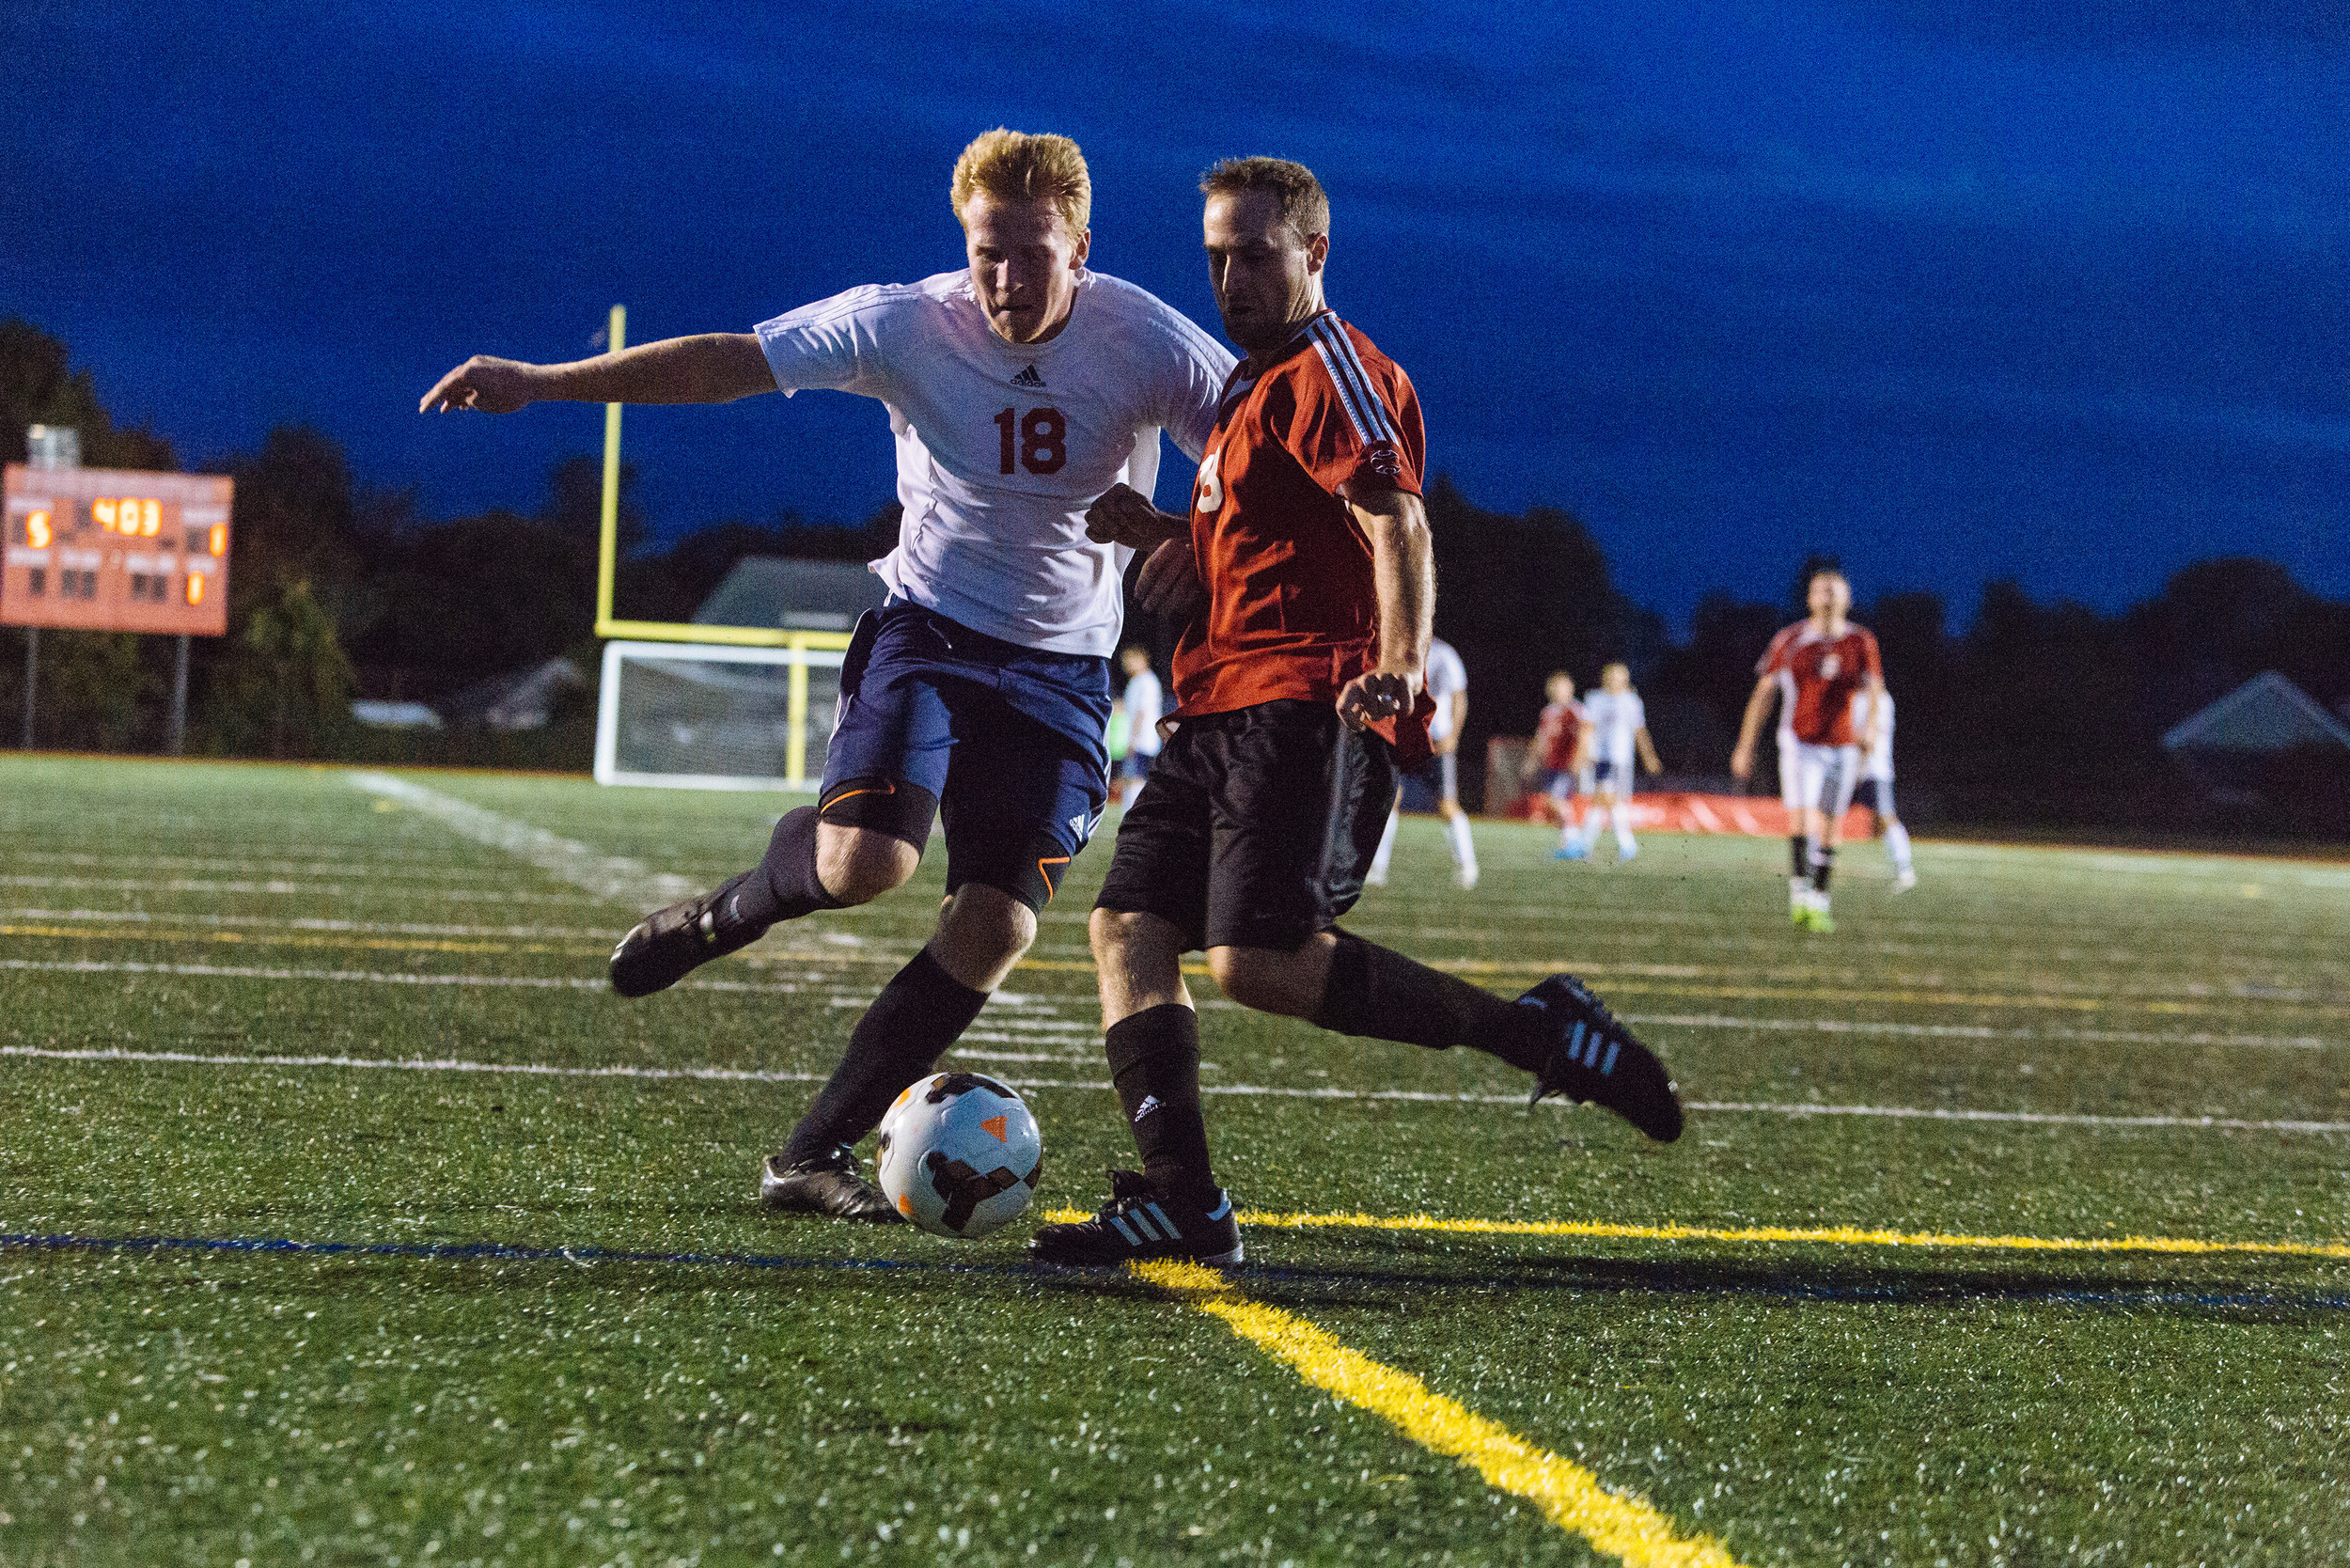 PHS senior Will Swart (left) battles for the ball with Sean Raymond, a member of the alumni team.